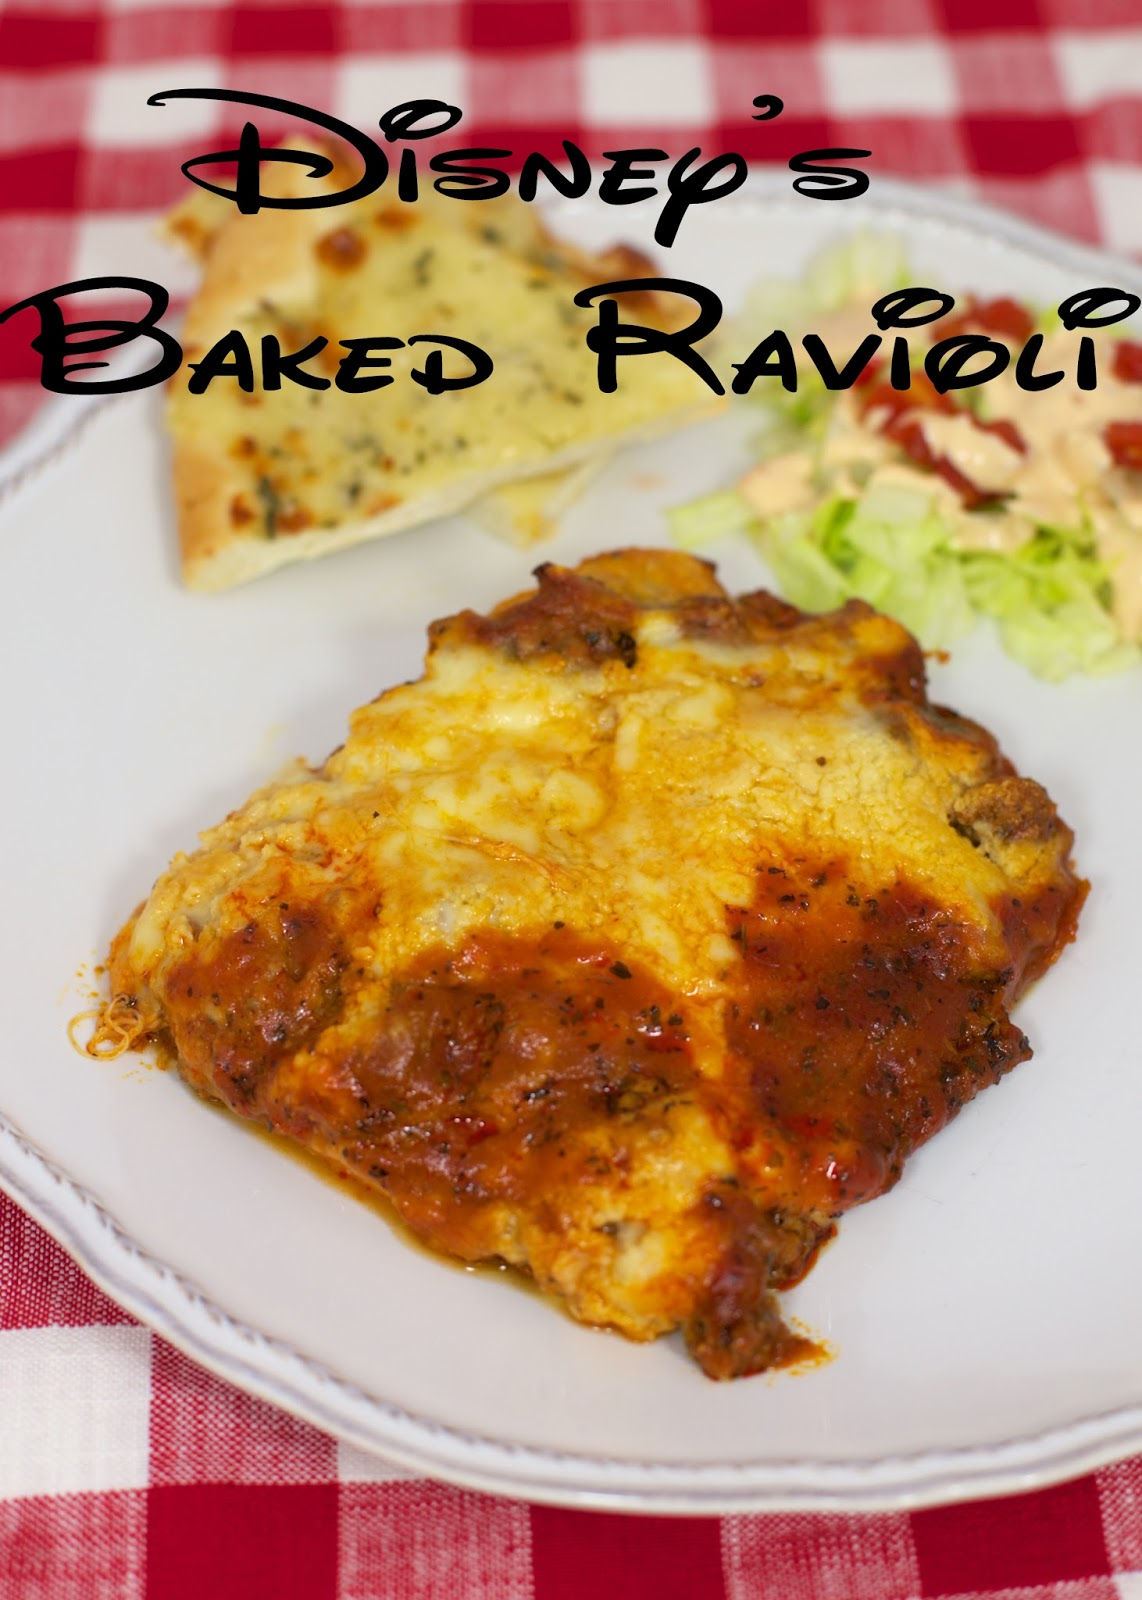 Disney's Baked Ravioli - Frozen ravioli smothered with a homemade meat ...